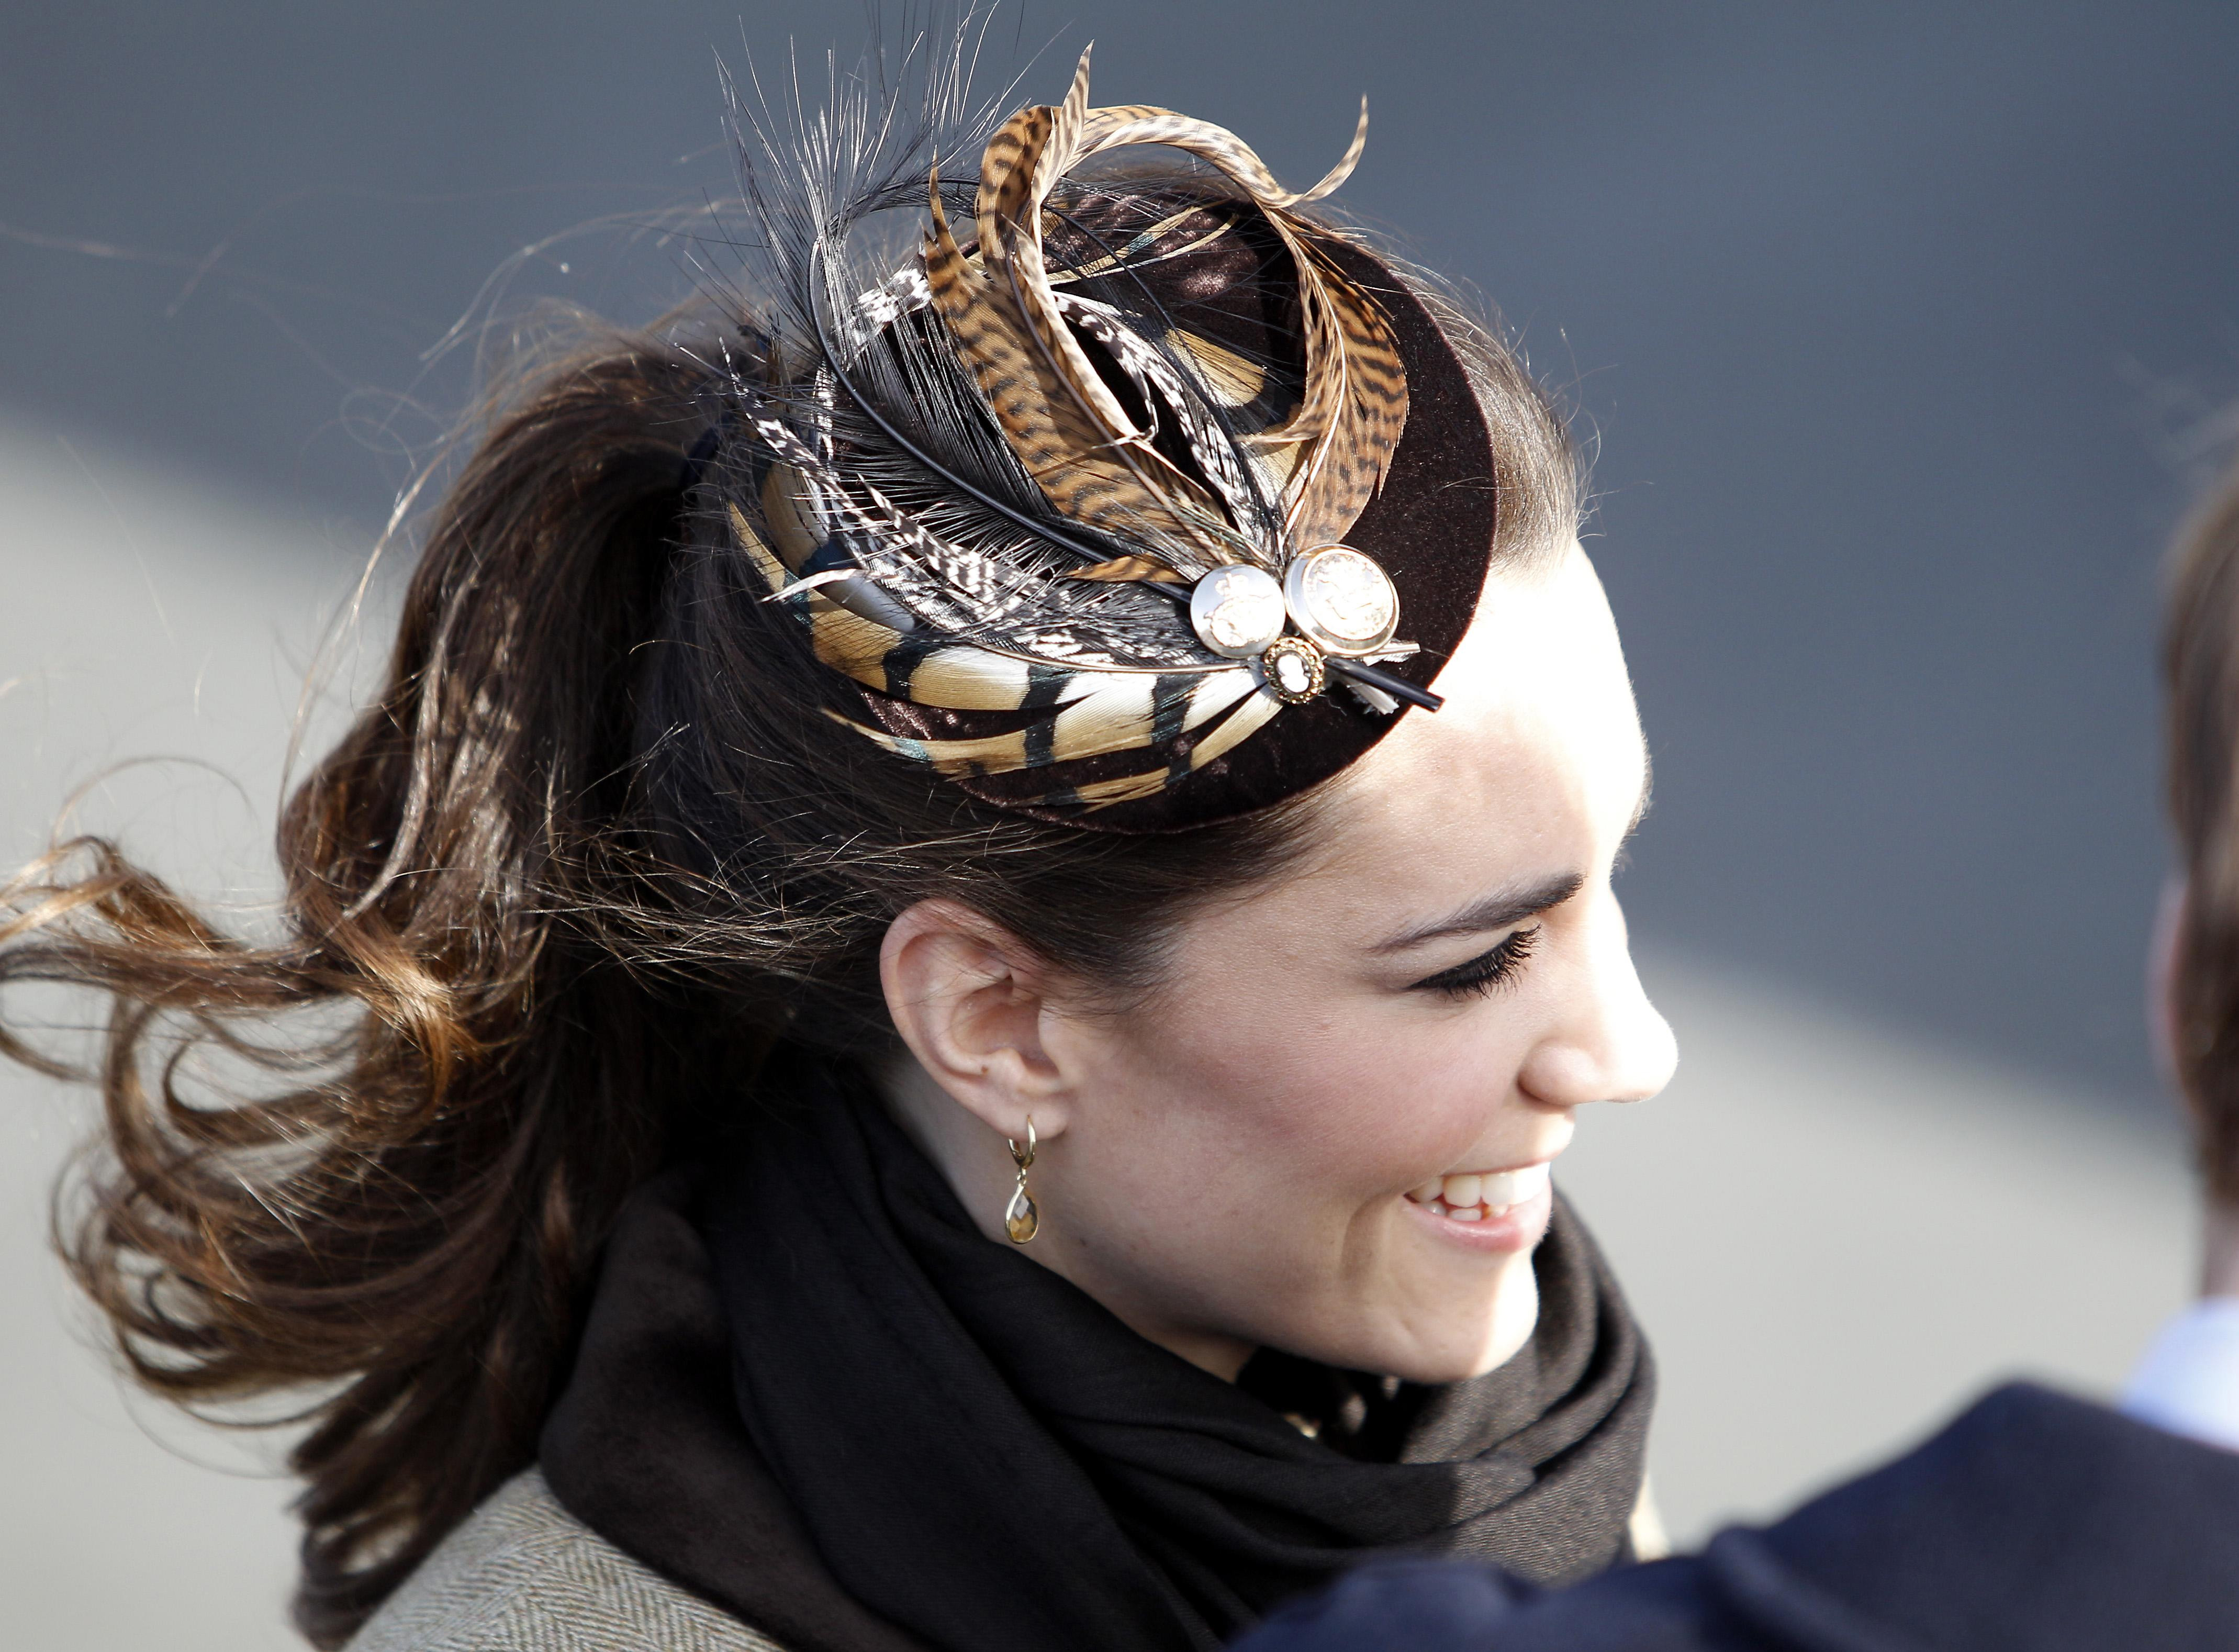 Kate Middleton wears a Vivien Sheriff hat at a service of dedication for a new RNLI lifeboat at Trearddur Bay Lifeboat Station in Anglesey, North Wales.